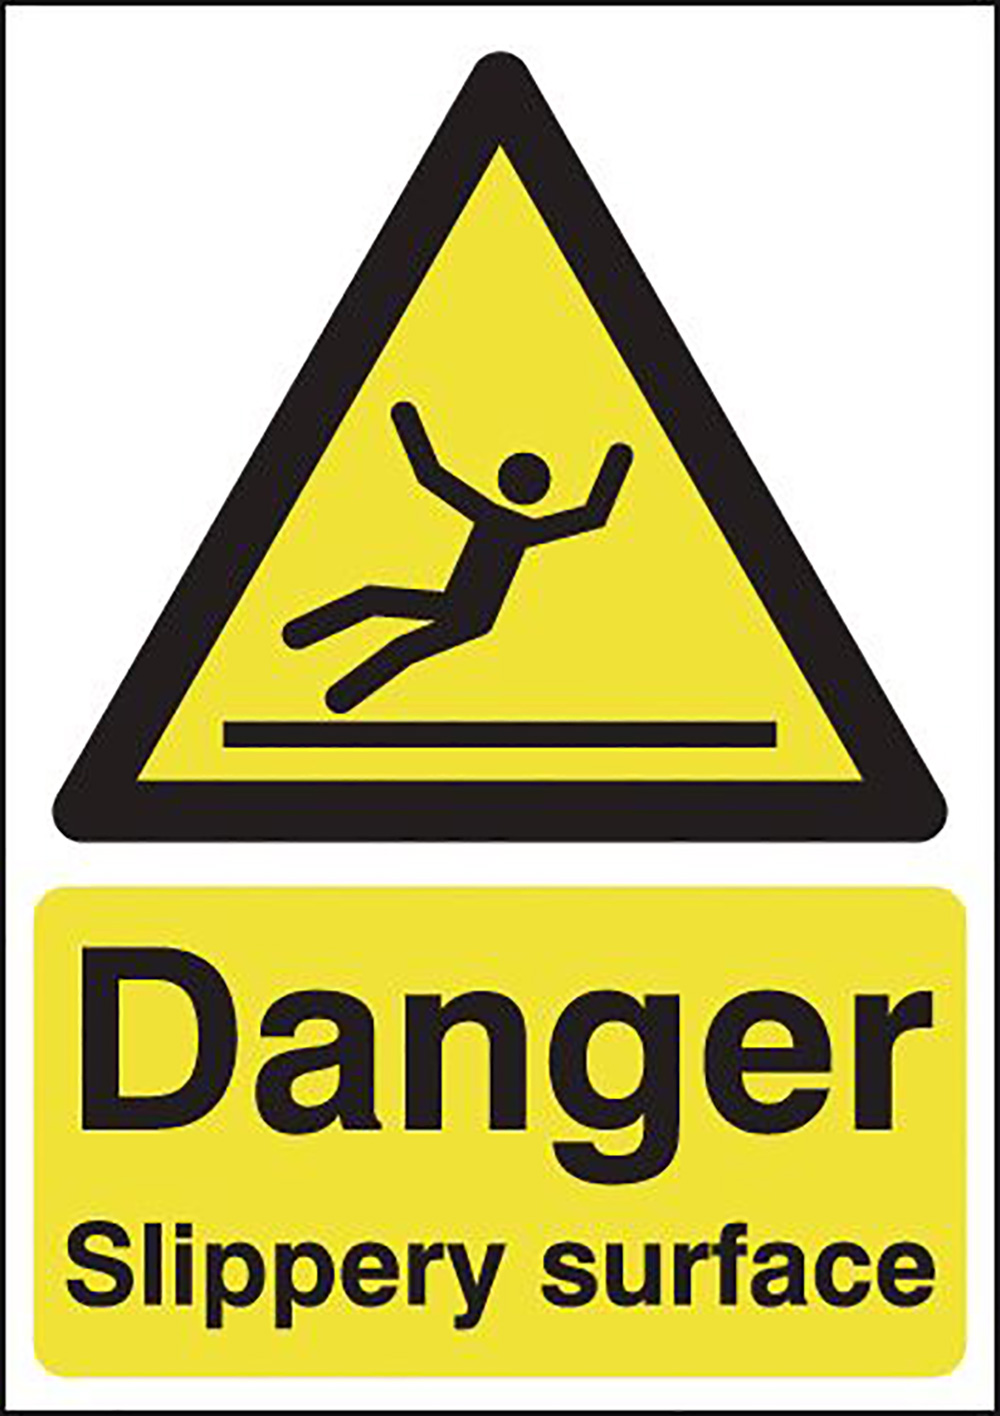 Danger Slippery Surface 420x297mm 1.2mm Rigid Plastic Safety Sign